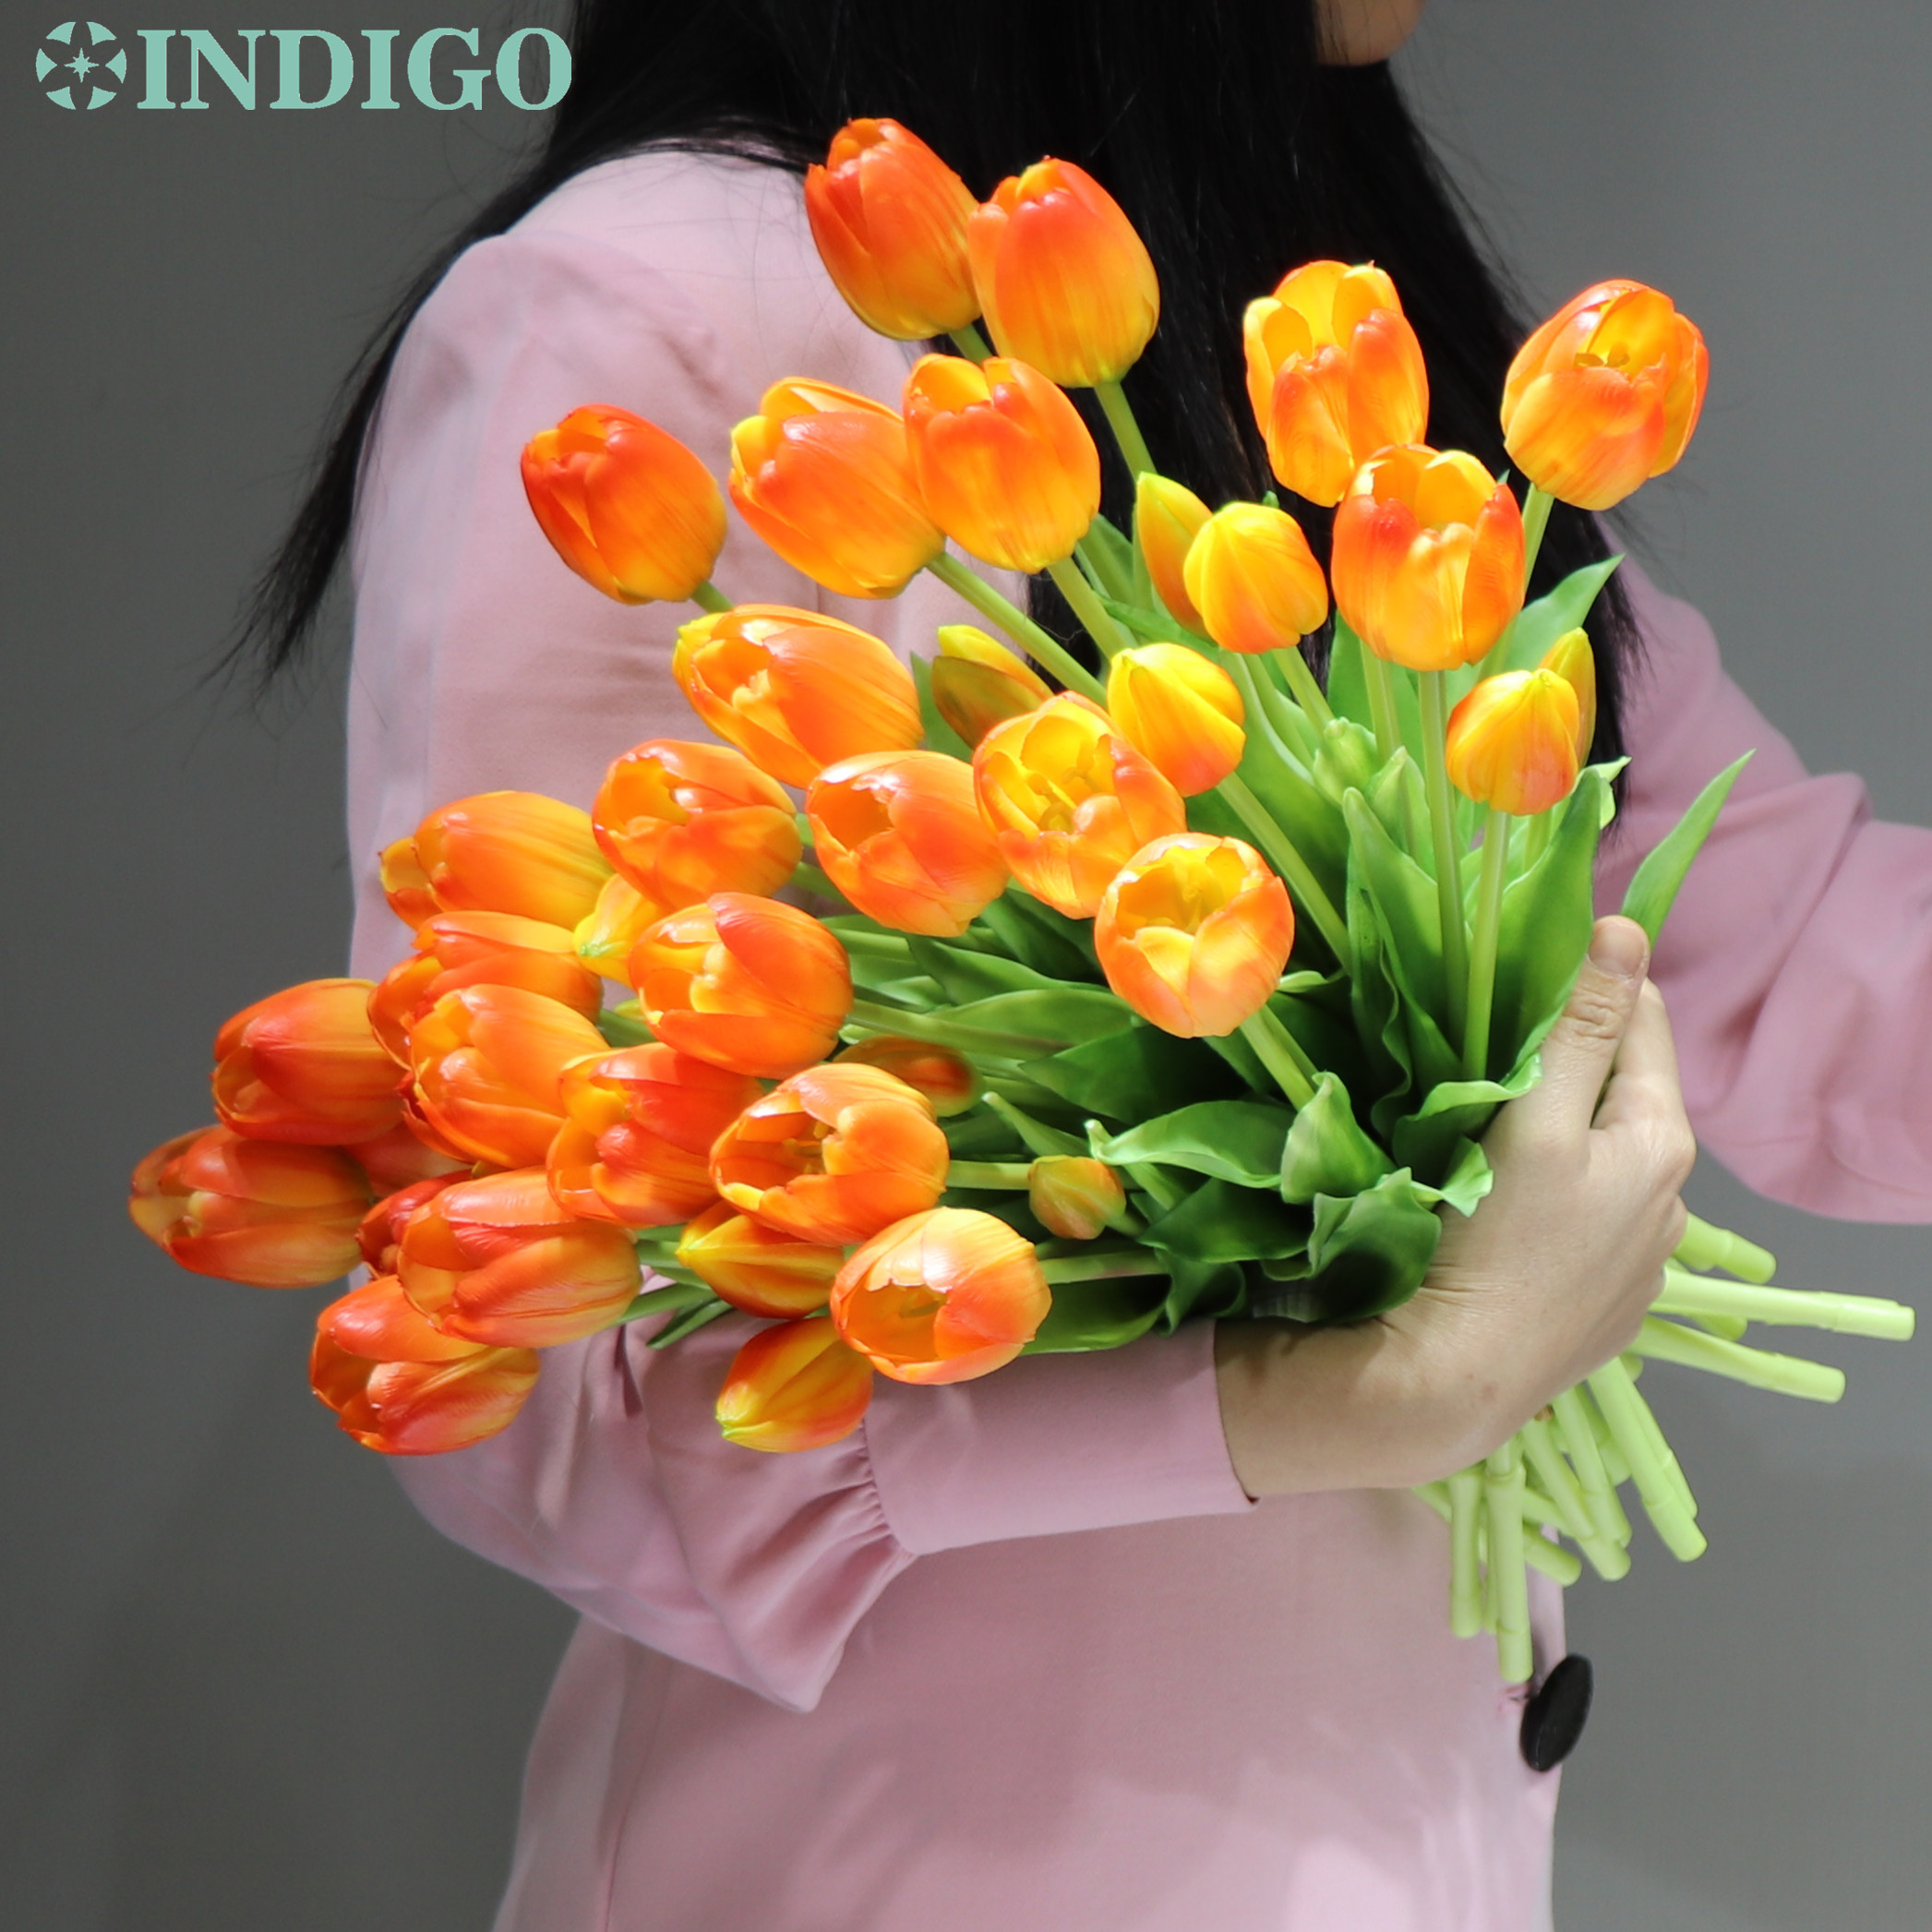 INDIGO-(3 flowers+2 bud)Bouquet Real Touch Silicone Tulip High Quality Yellow Tulip Home Artificial Flower Wedding DropShipping-2